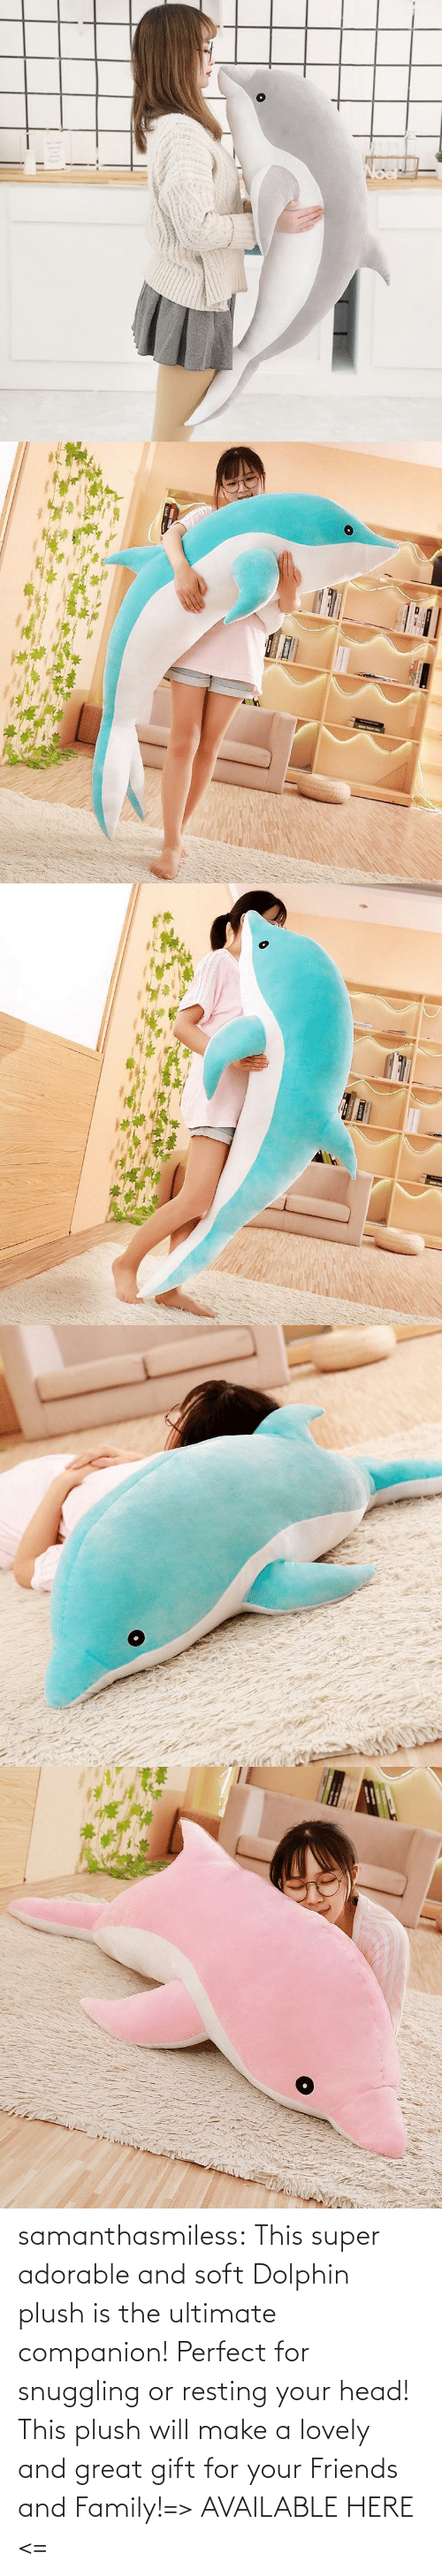 Resting: samanthasmiless:  This super adorable and soft Dolphin plush is the ultimate companion! Perfect for snuggling or resting your head! This plush will make a lovely and great gift for your Friends and Family!=> AVAILABLE HERE <=